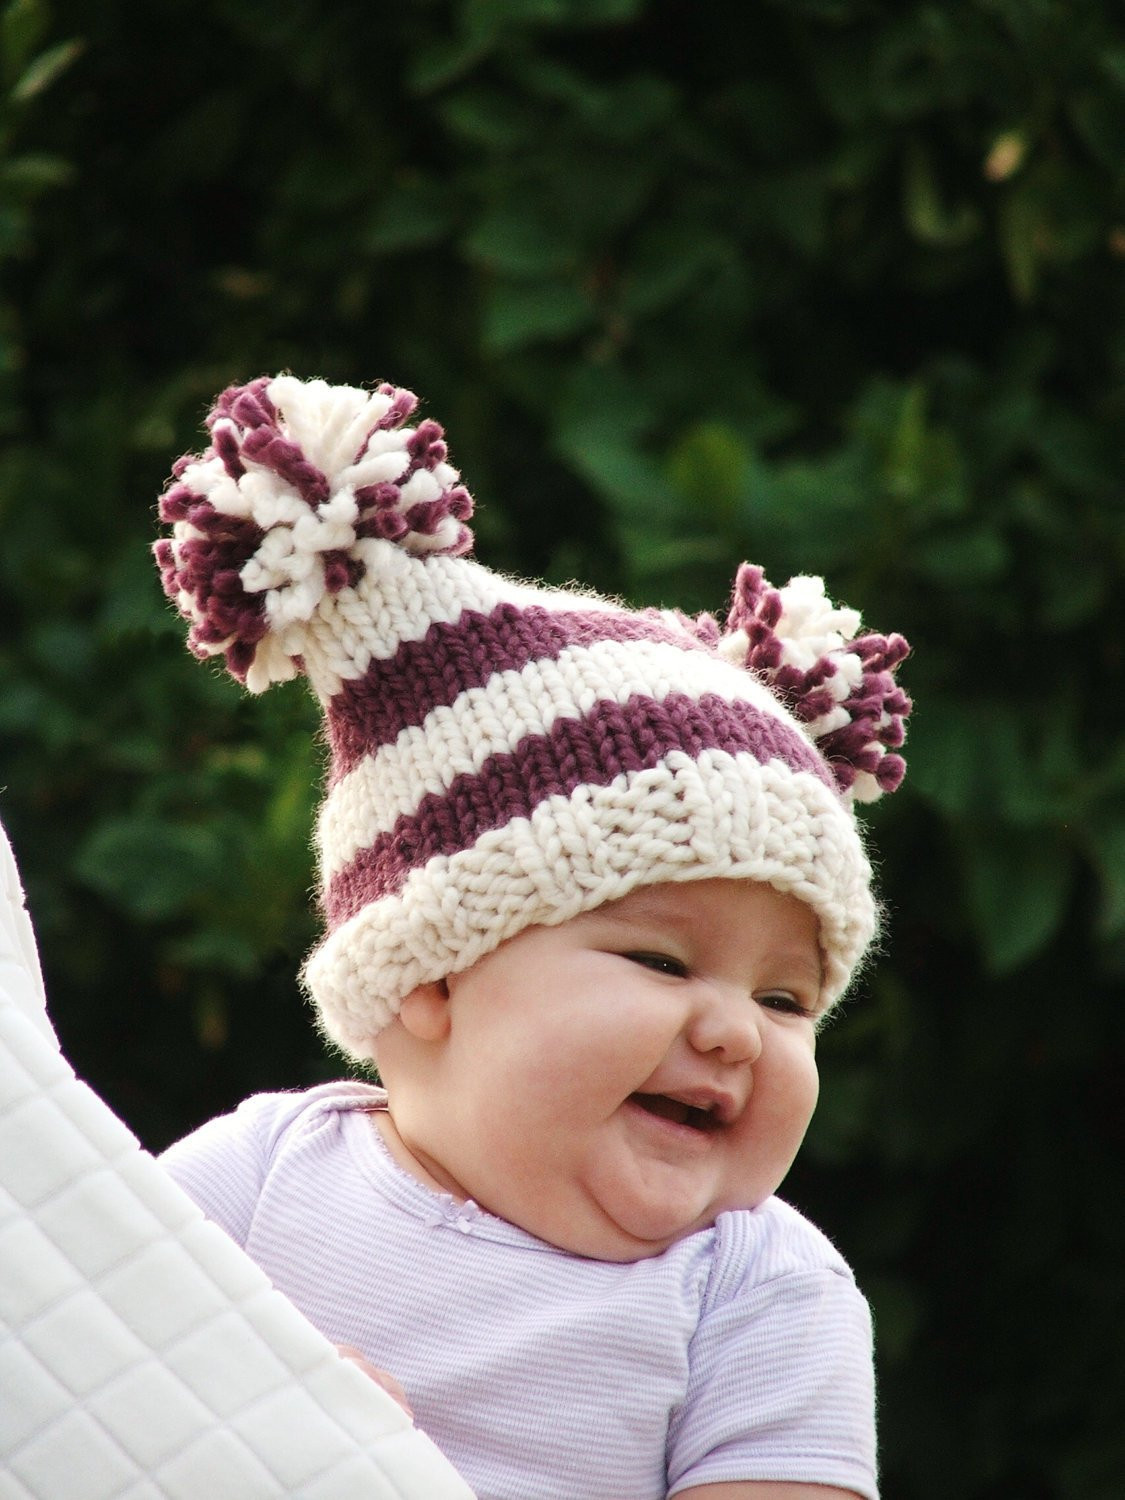 Best Of Patterns for Newborn Hats Knitted Baby Bonnet Of Top 47 Pics Knitted Baby Bonnet